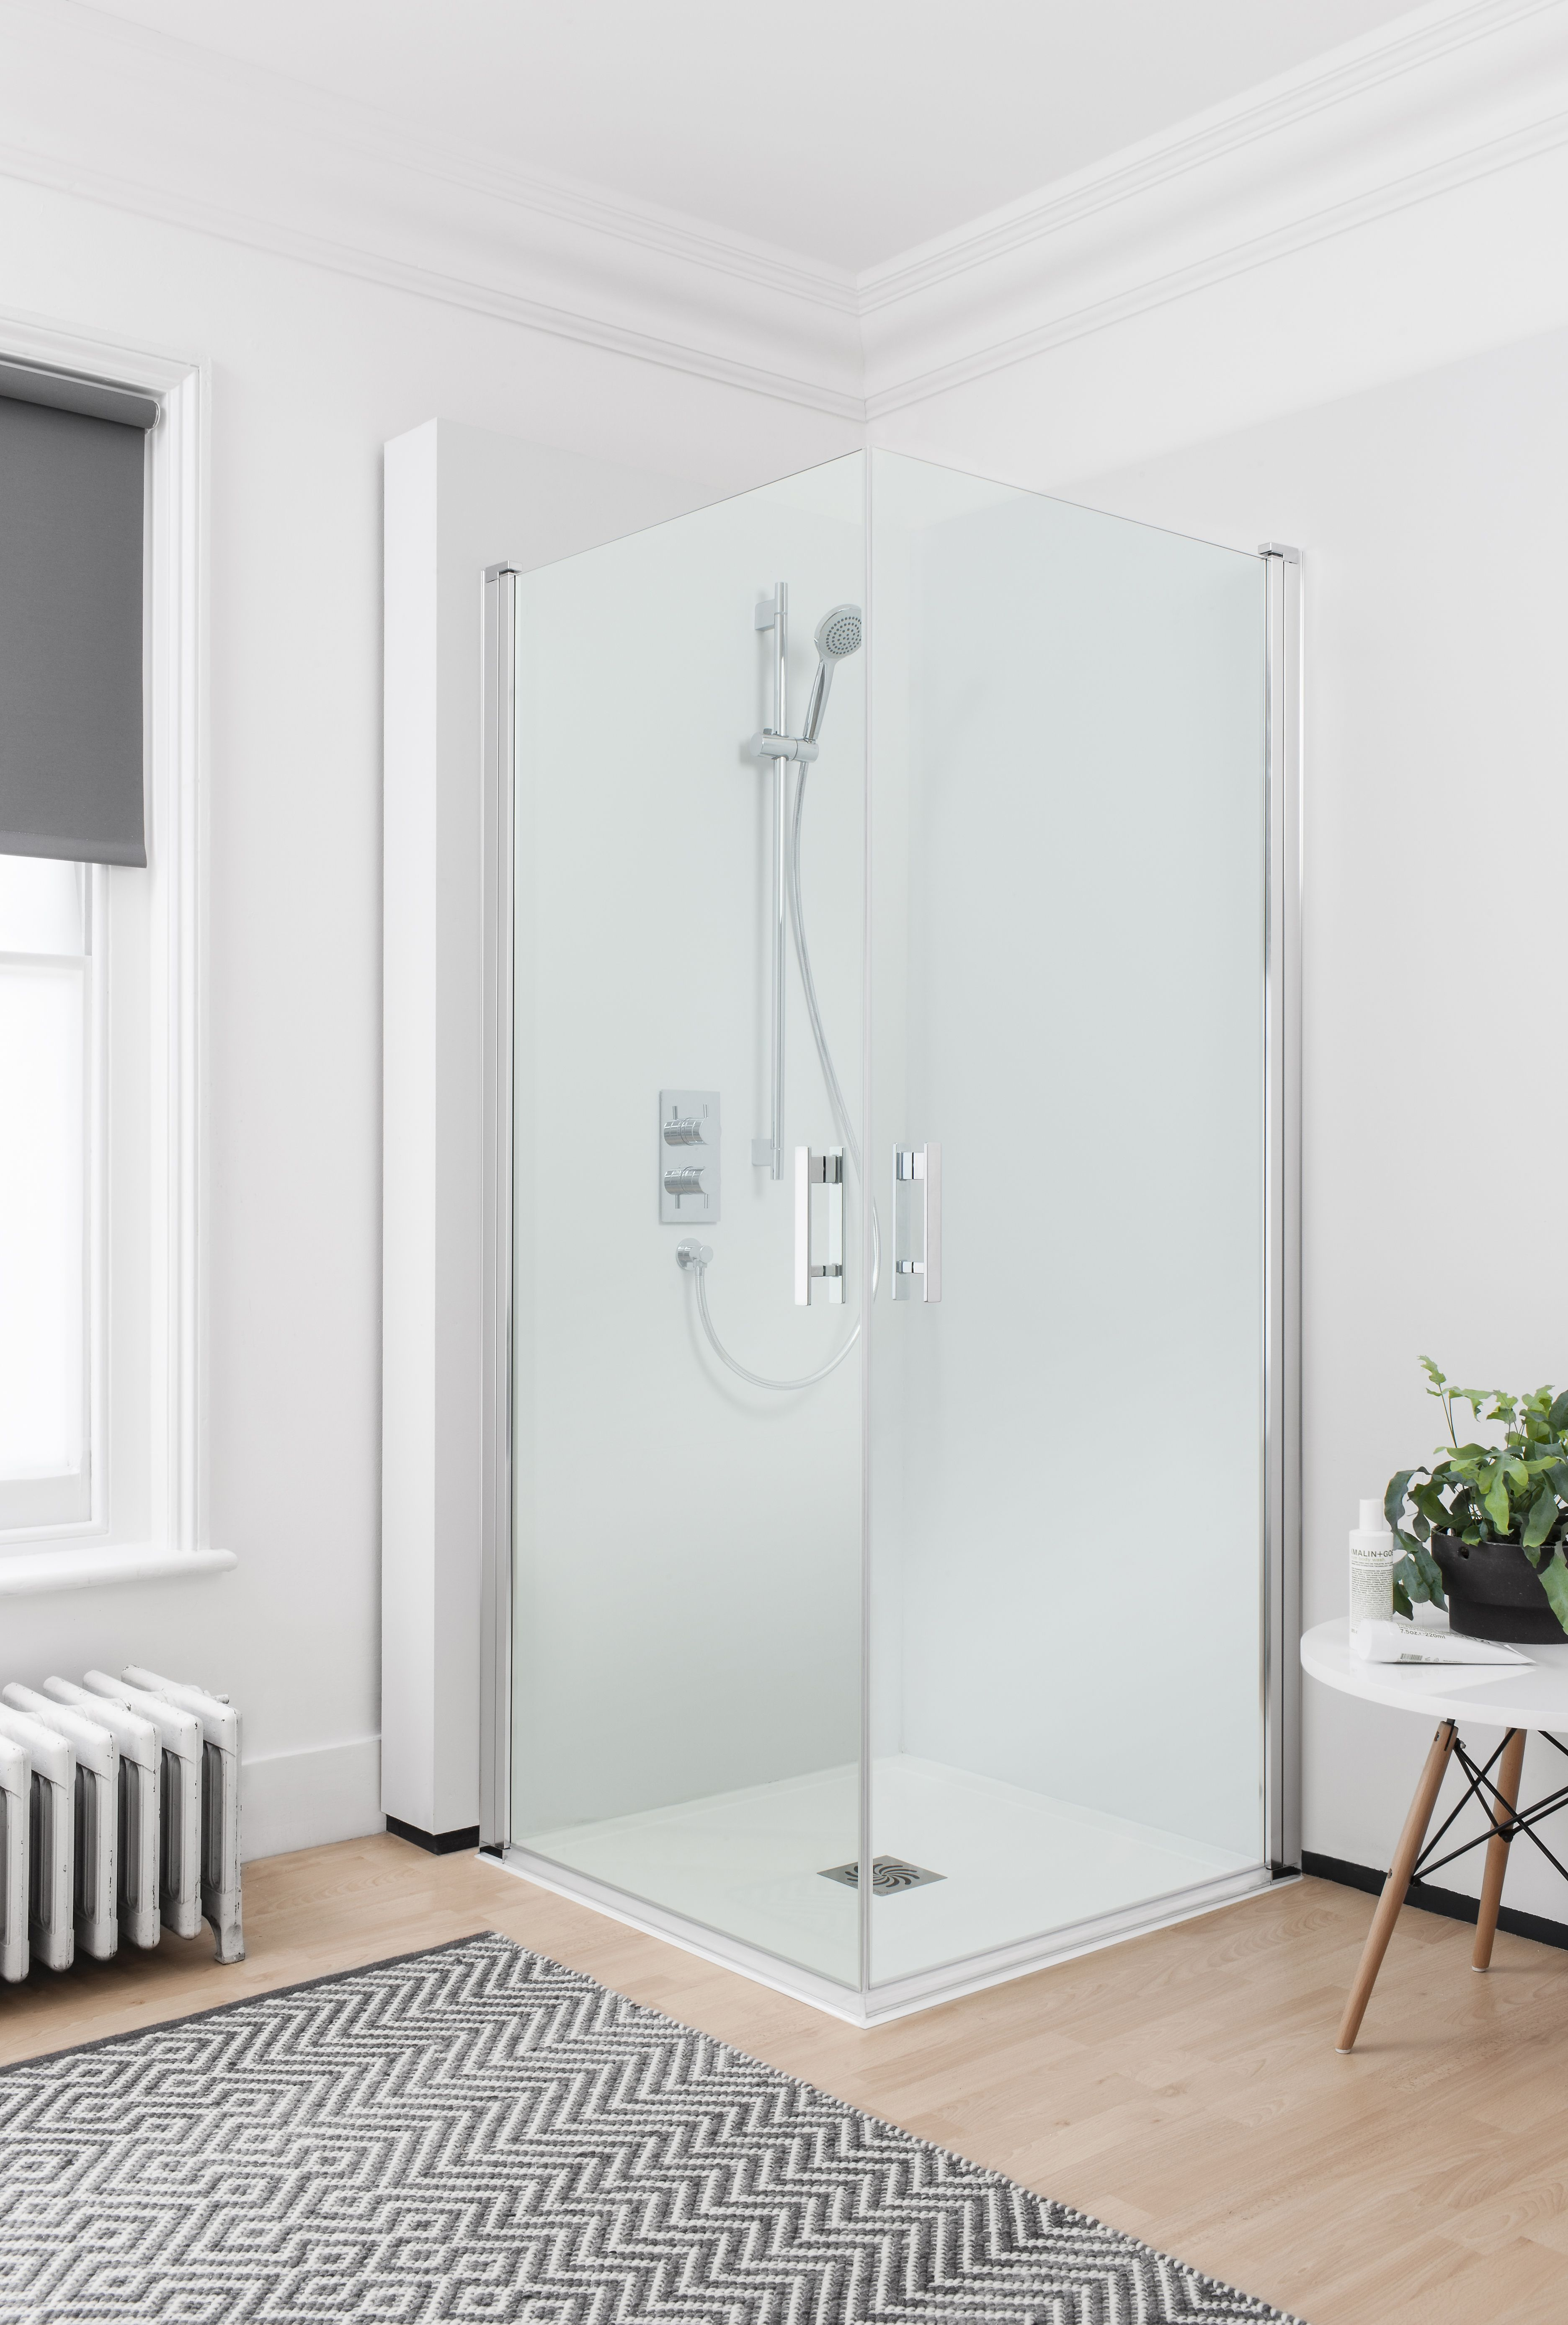 The new range of \'Click\' shower enclosures offers innovative design ...